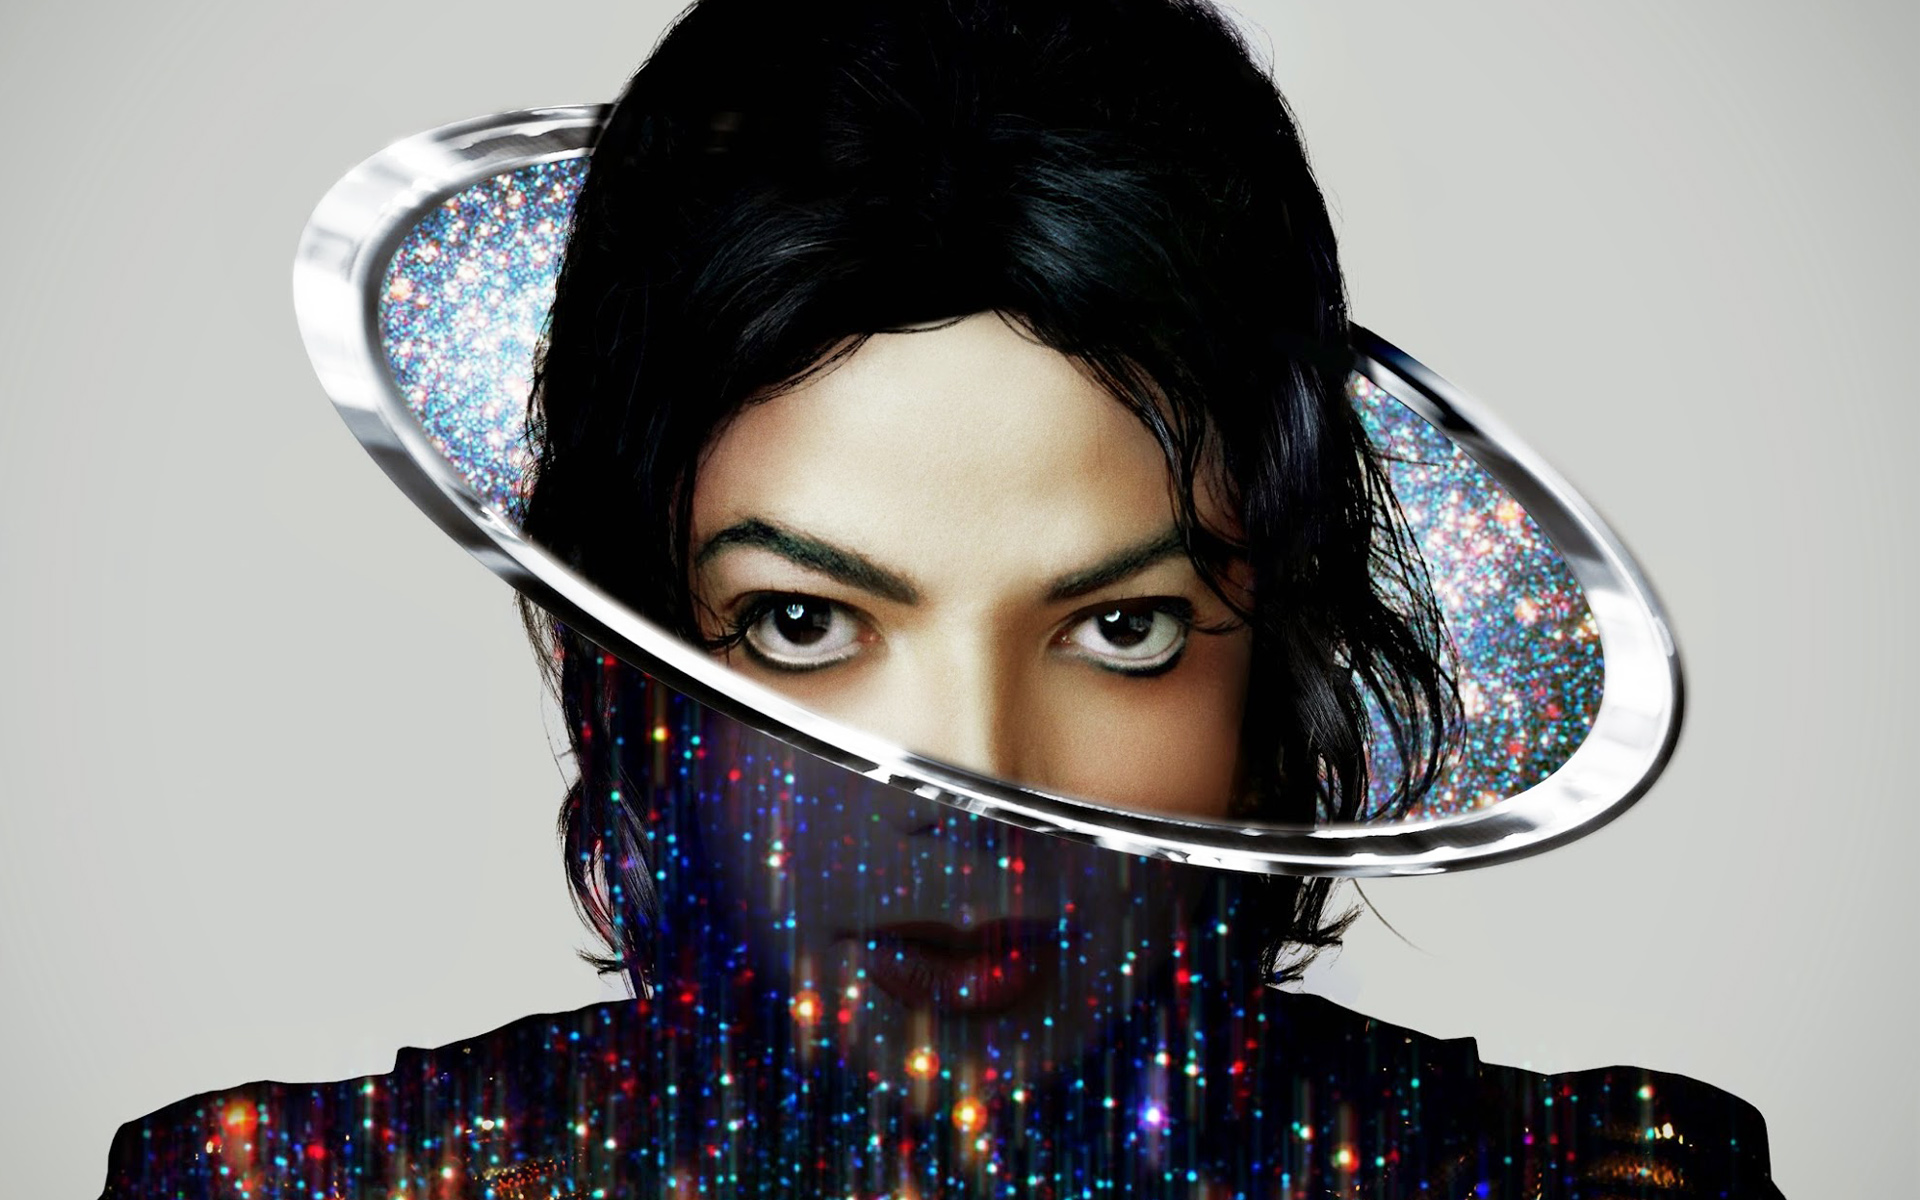 Michael Jackson Xscape 151.7 Kb